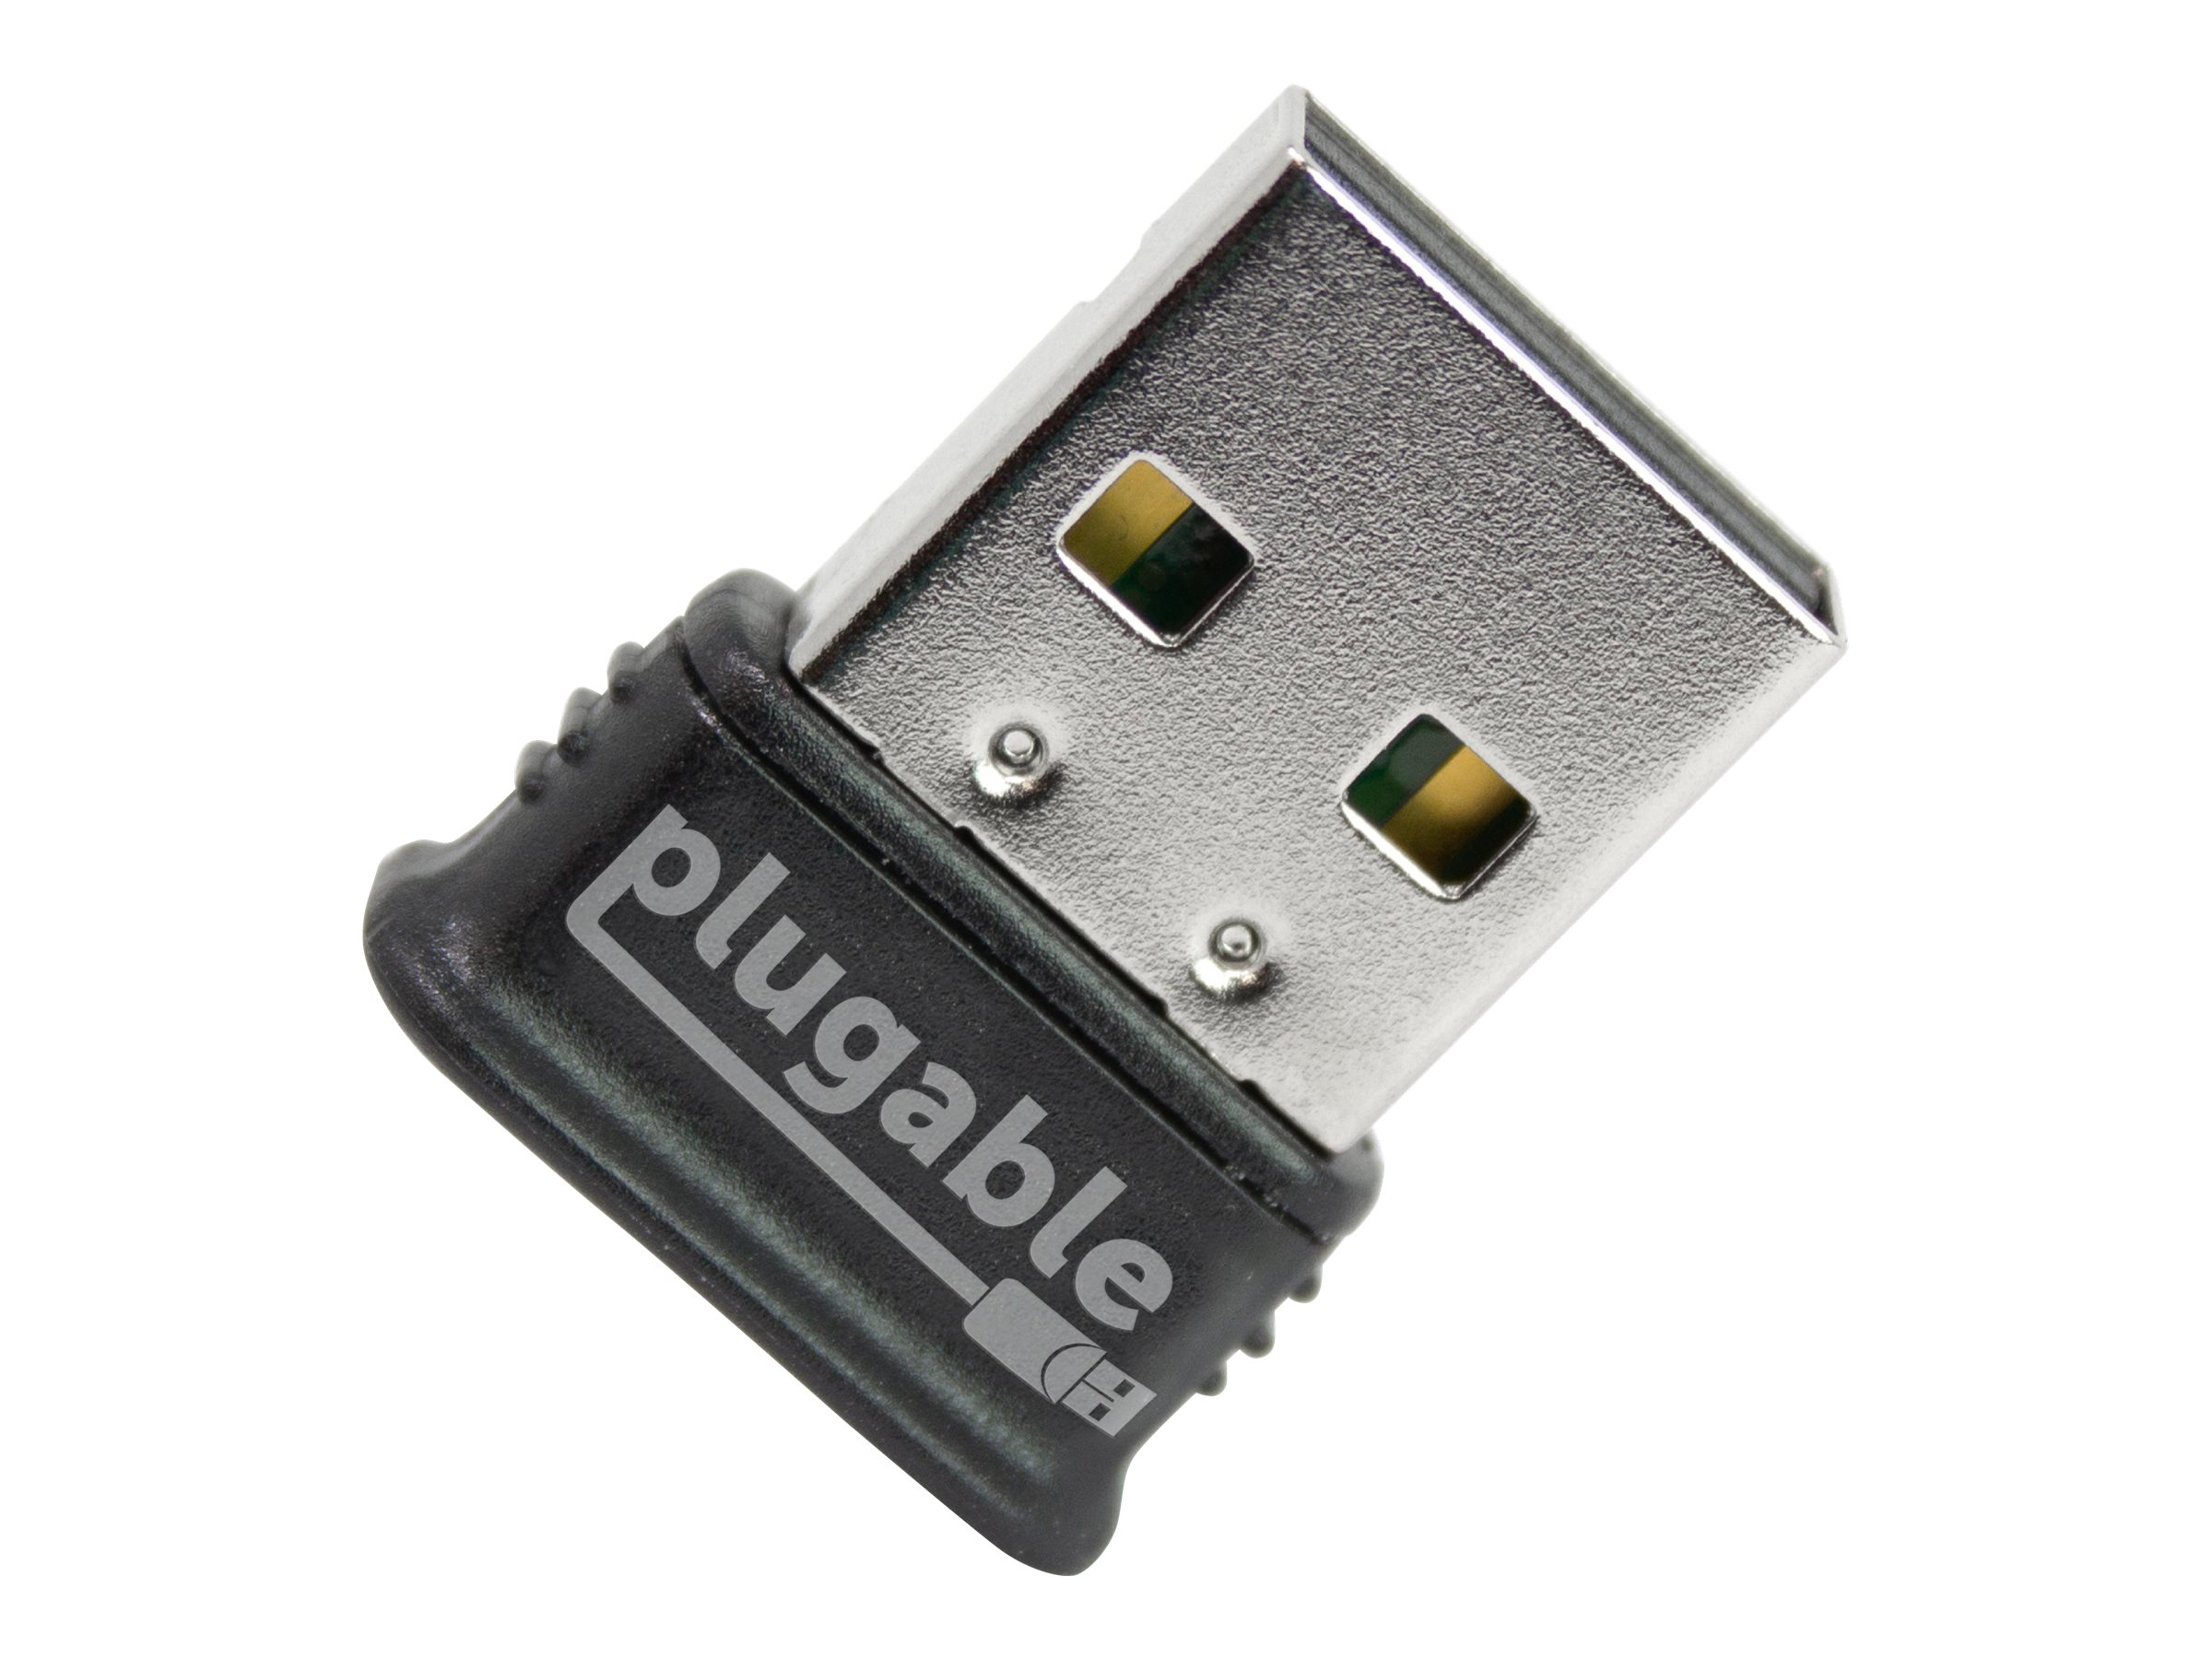 Plugable - network adapter - USB 2.0